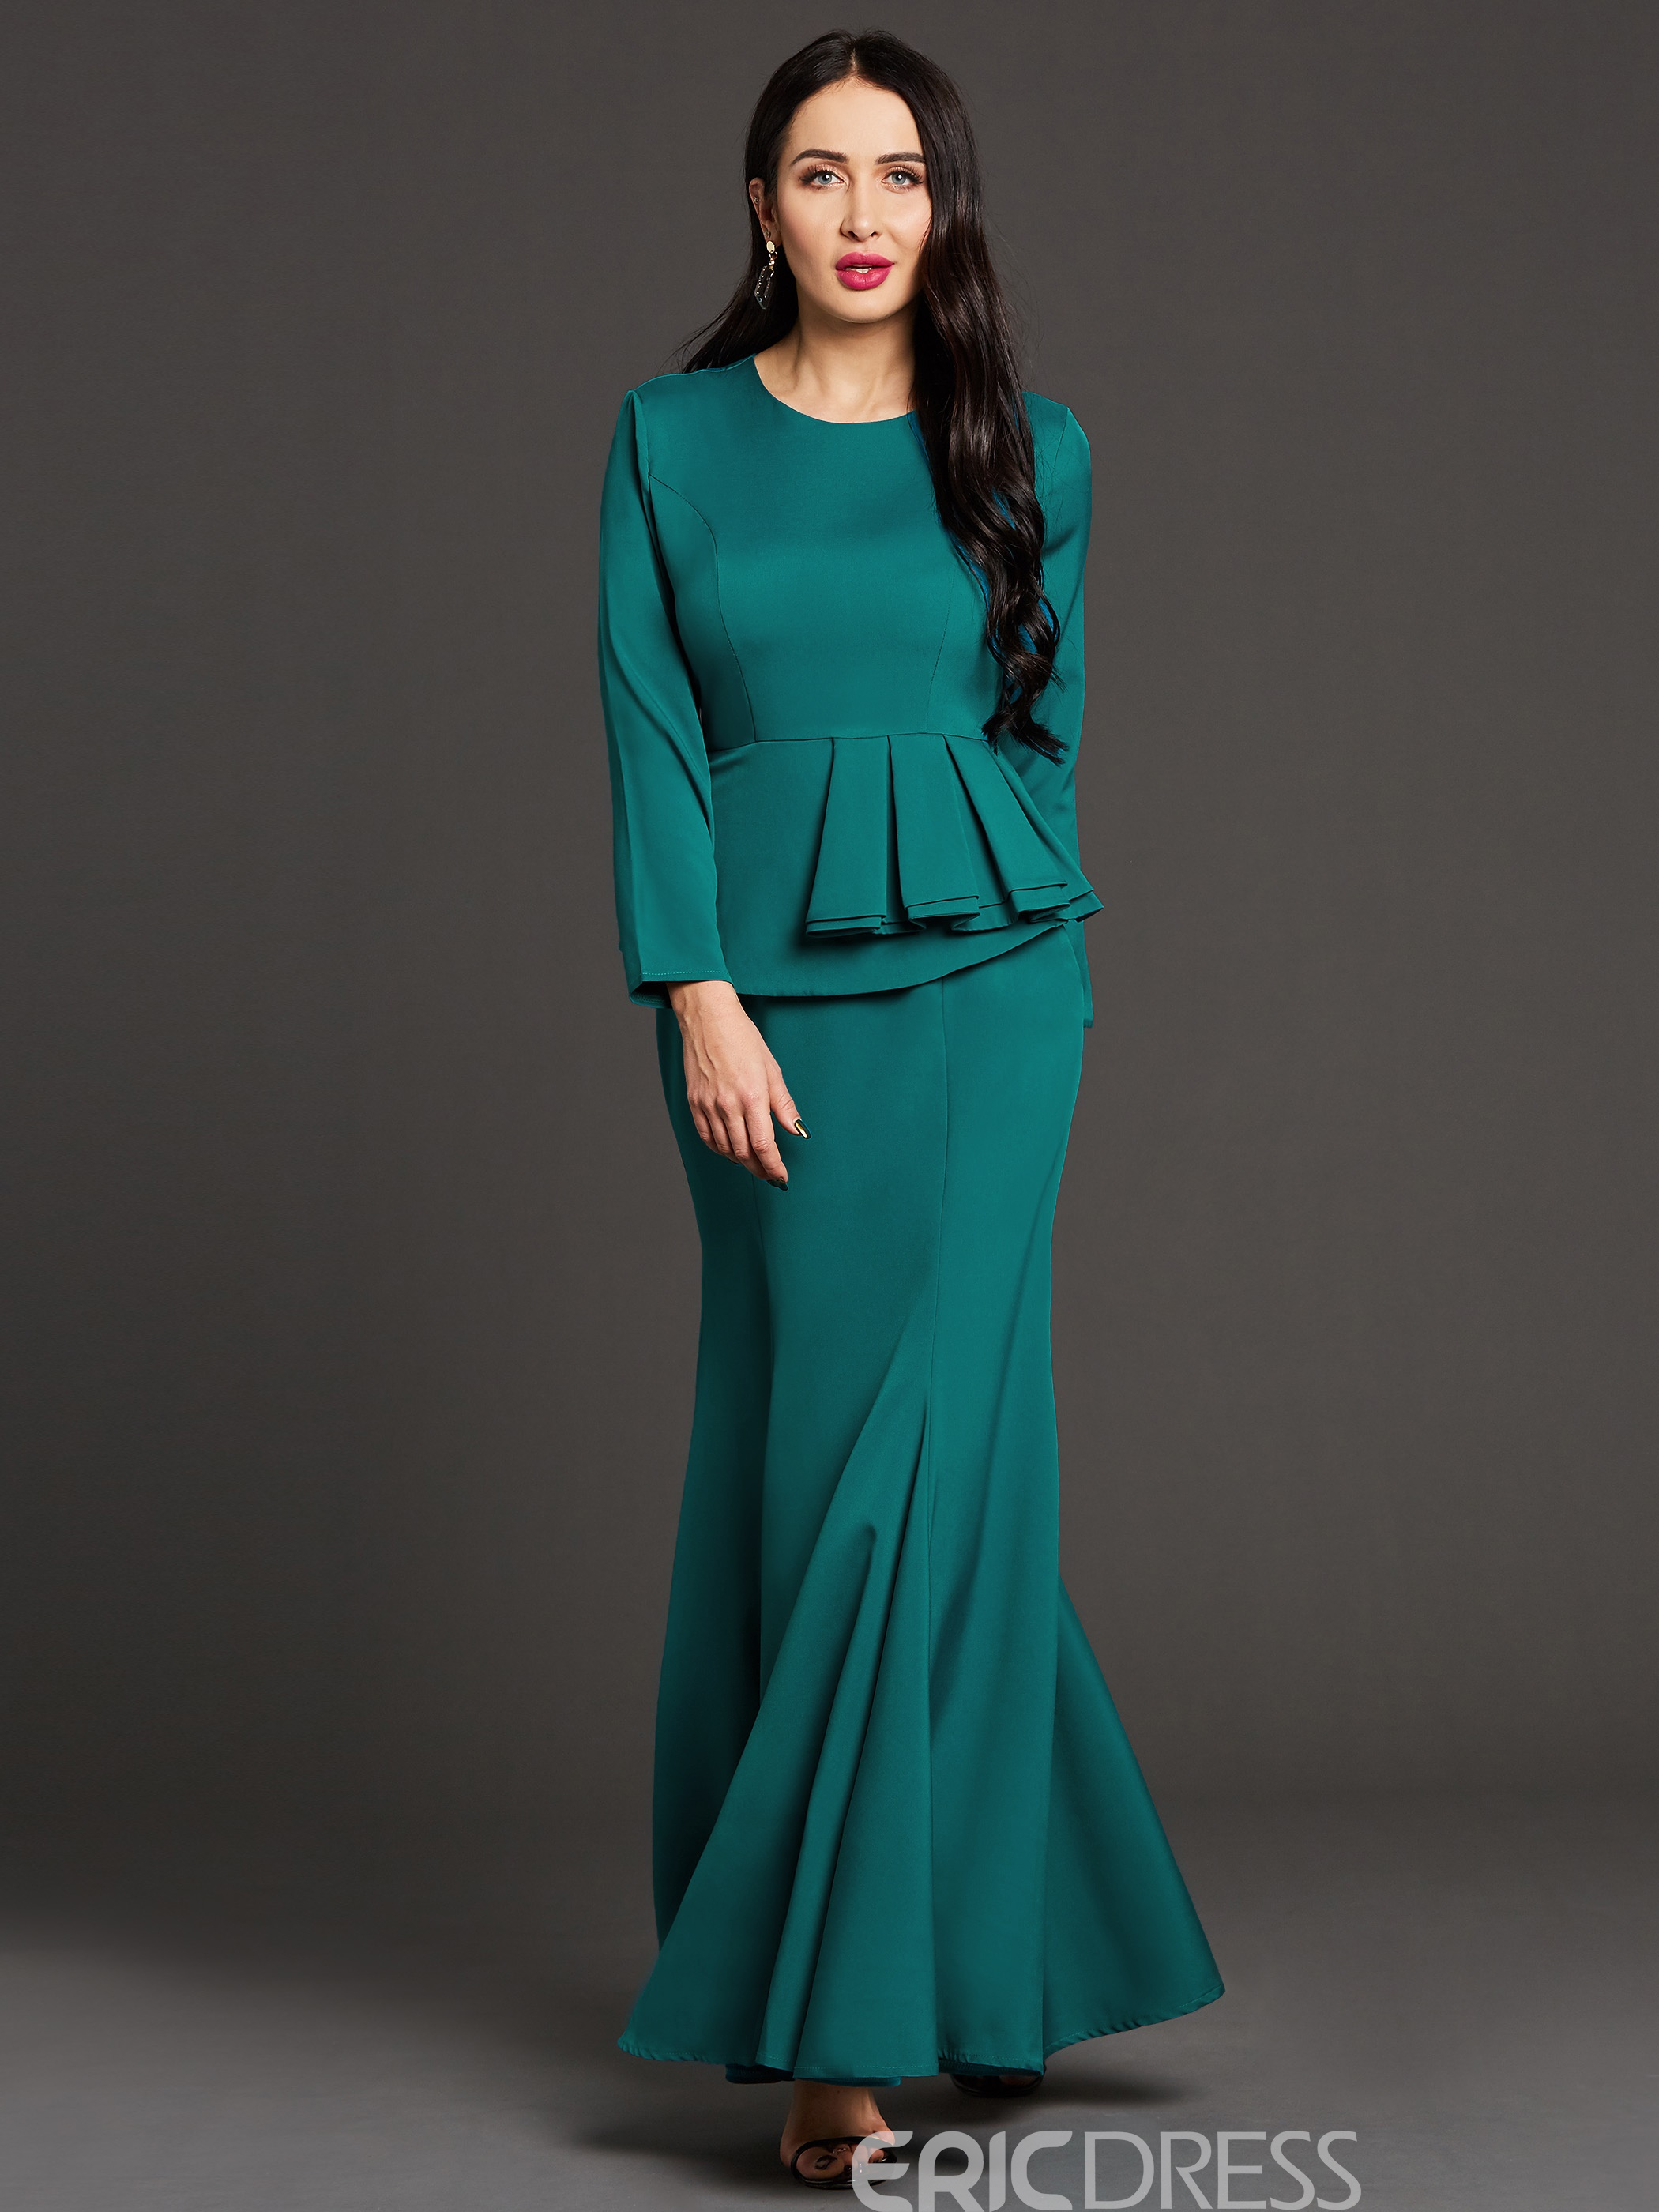 Ericdress Mermaid Ruffled Floor-Length Maxi Dress